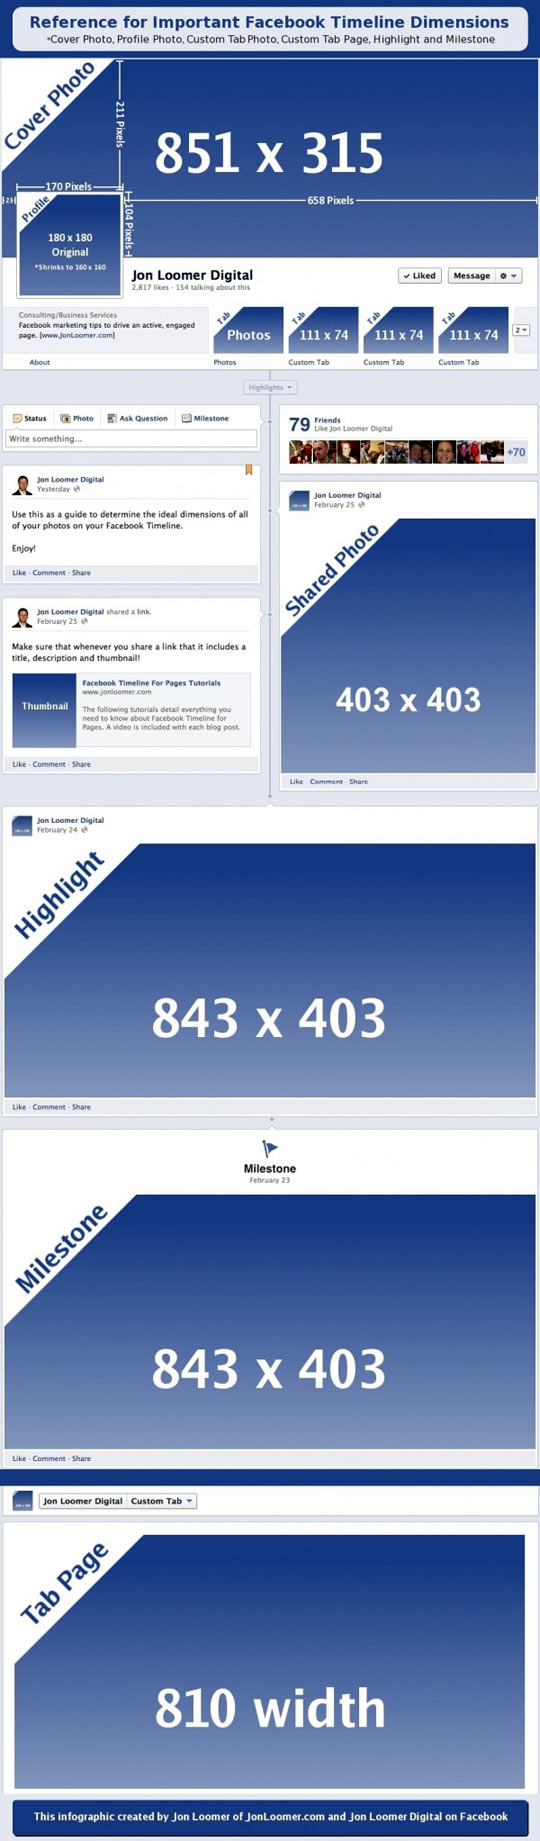 Facebook Timeline Image Sizes Infographic